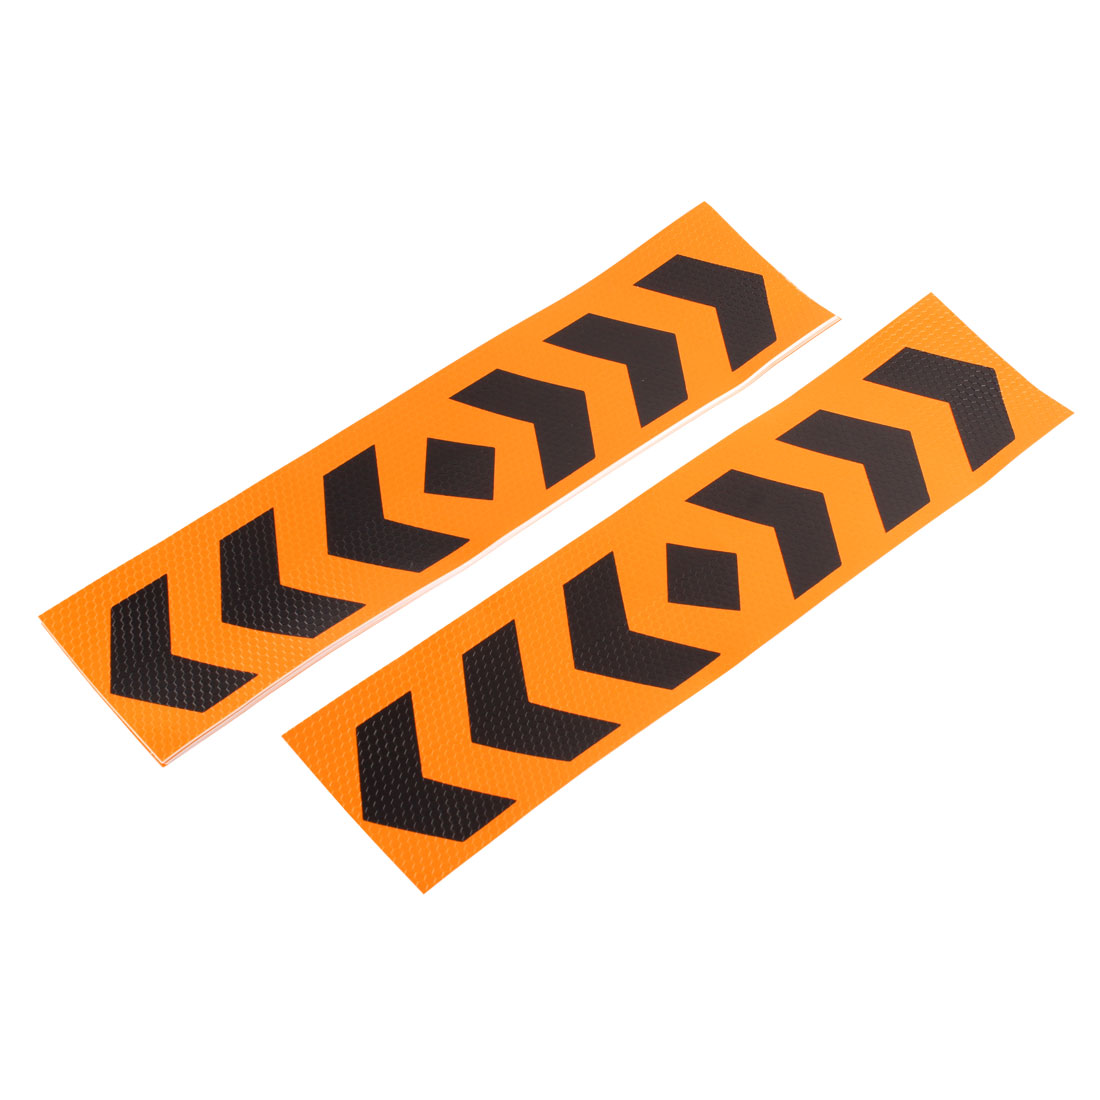 10 Pcs Car Auto Reflective Arrow Print Sticker Orange Black 40cm x 10cm